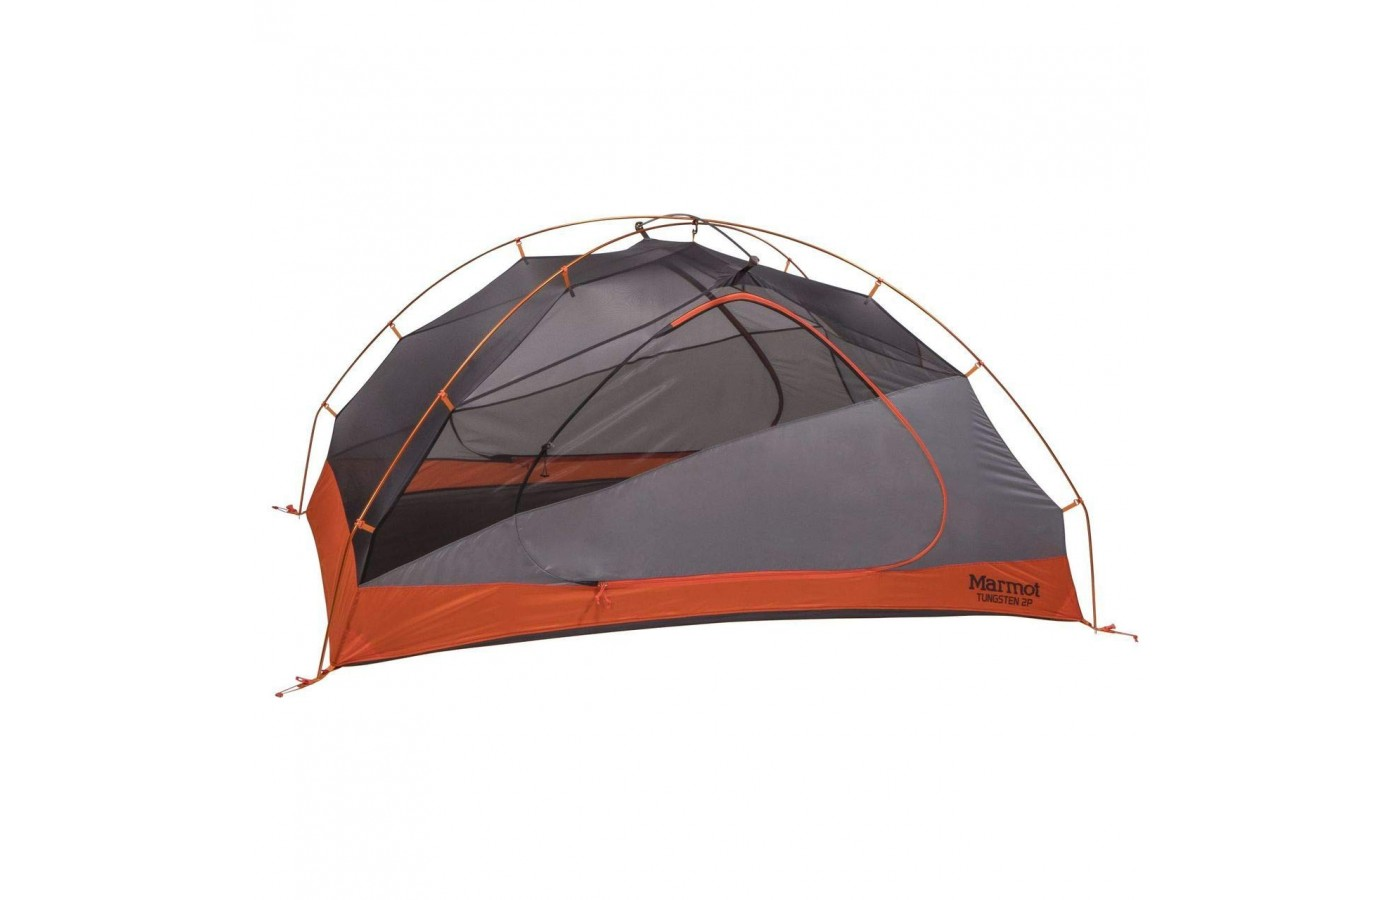 The Marmot Tungsten 2P is a tent for trails